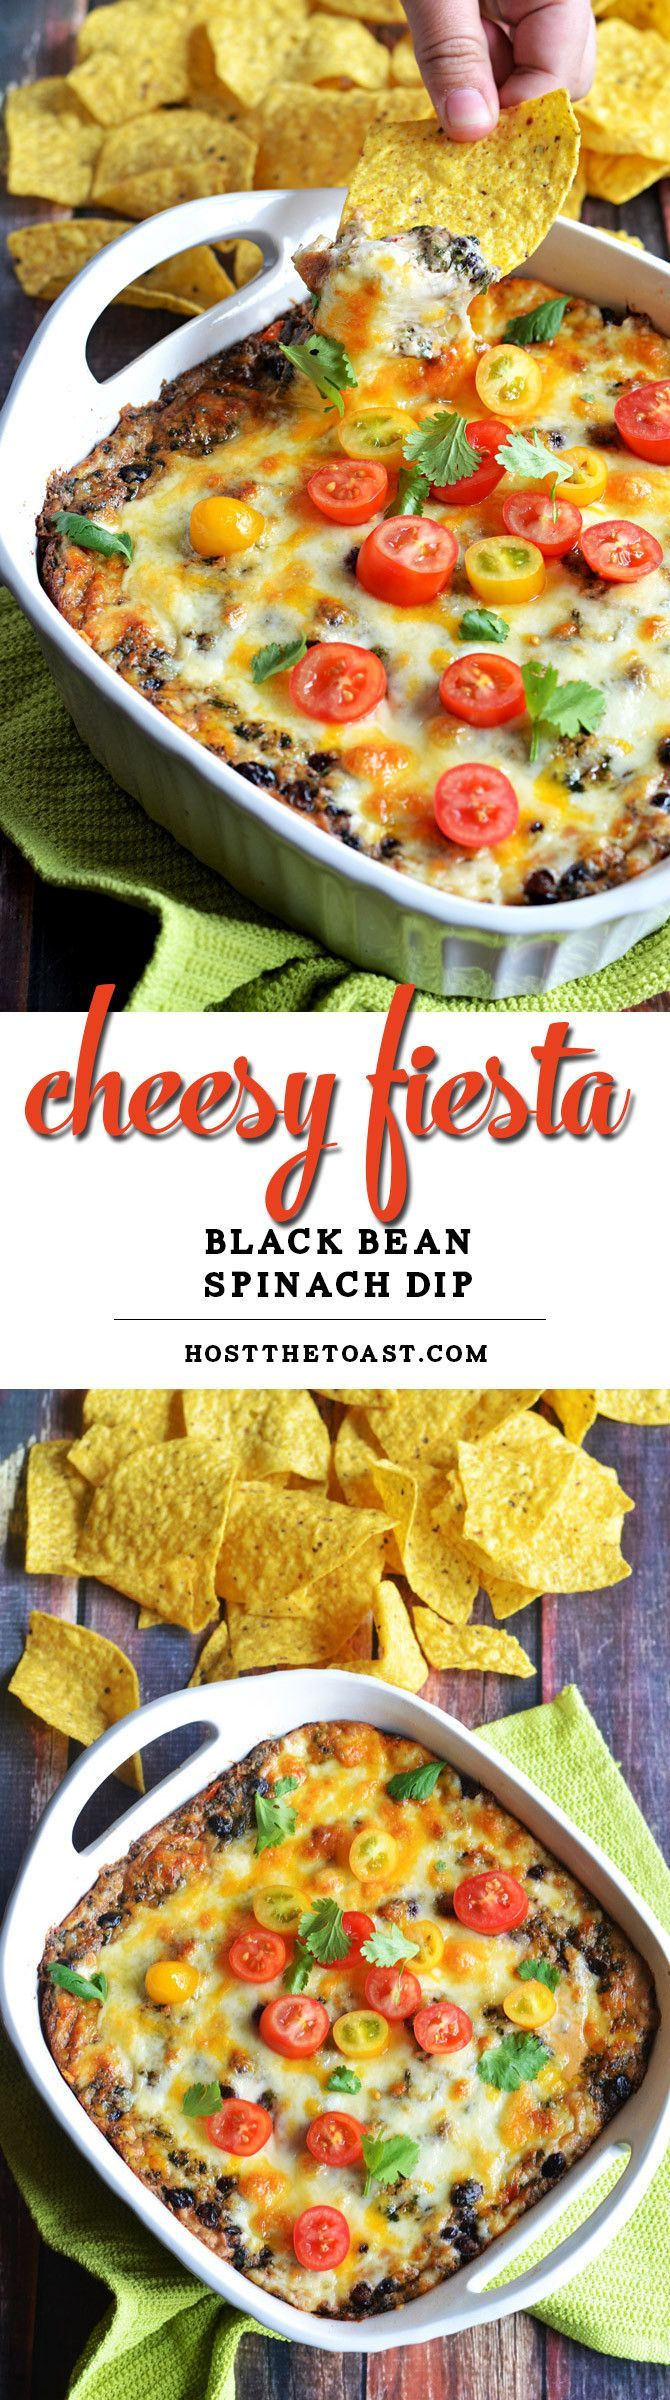 Roasted Cranberry Ricotta Crostini Recipe See More Cheesy Fiesta Black  Bean Spinach Dip This Dip Is Bound To Be A New Favorite